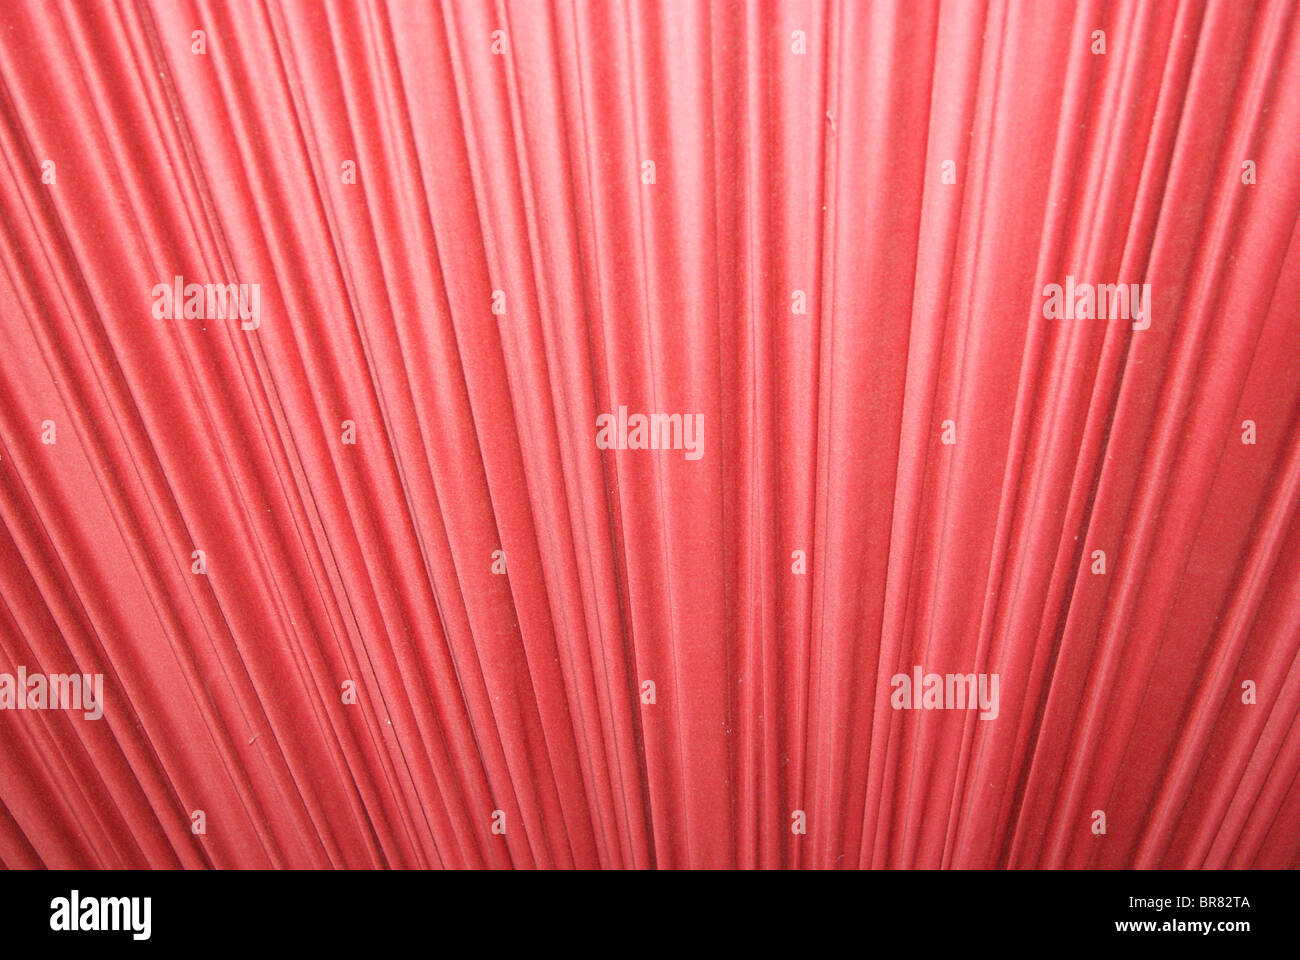 Red Pleated Fabric - Stock Image